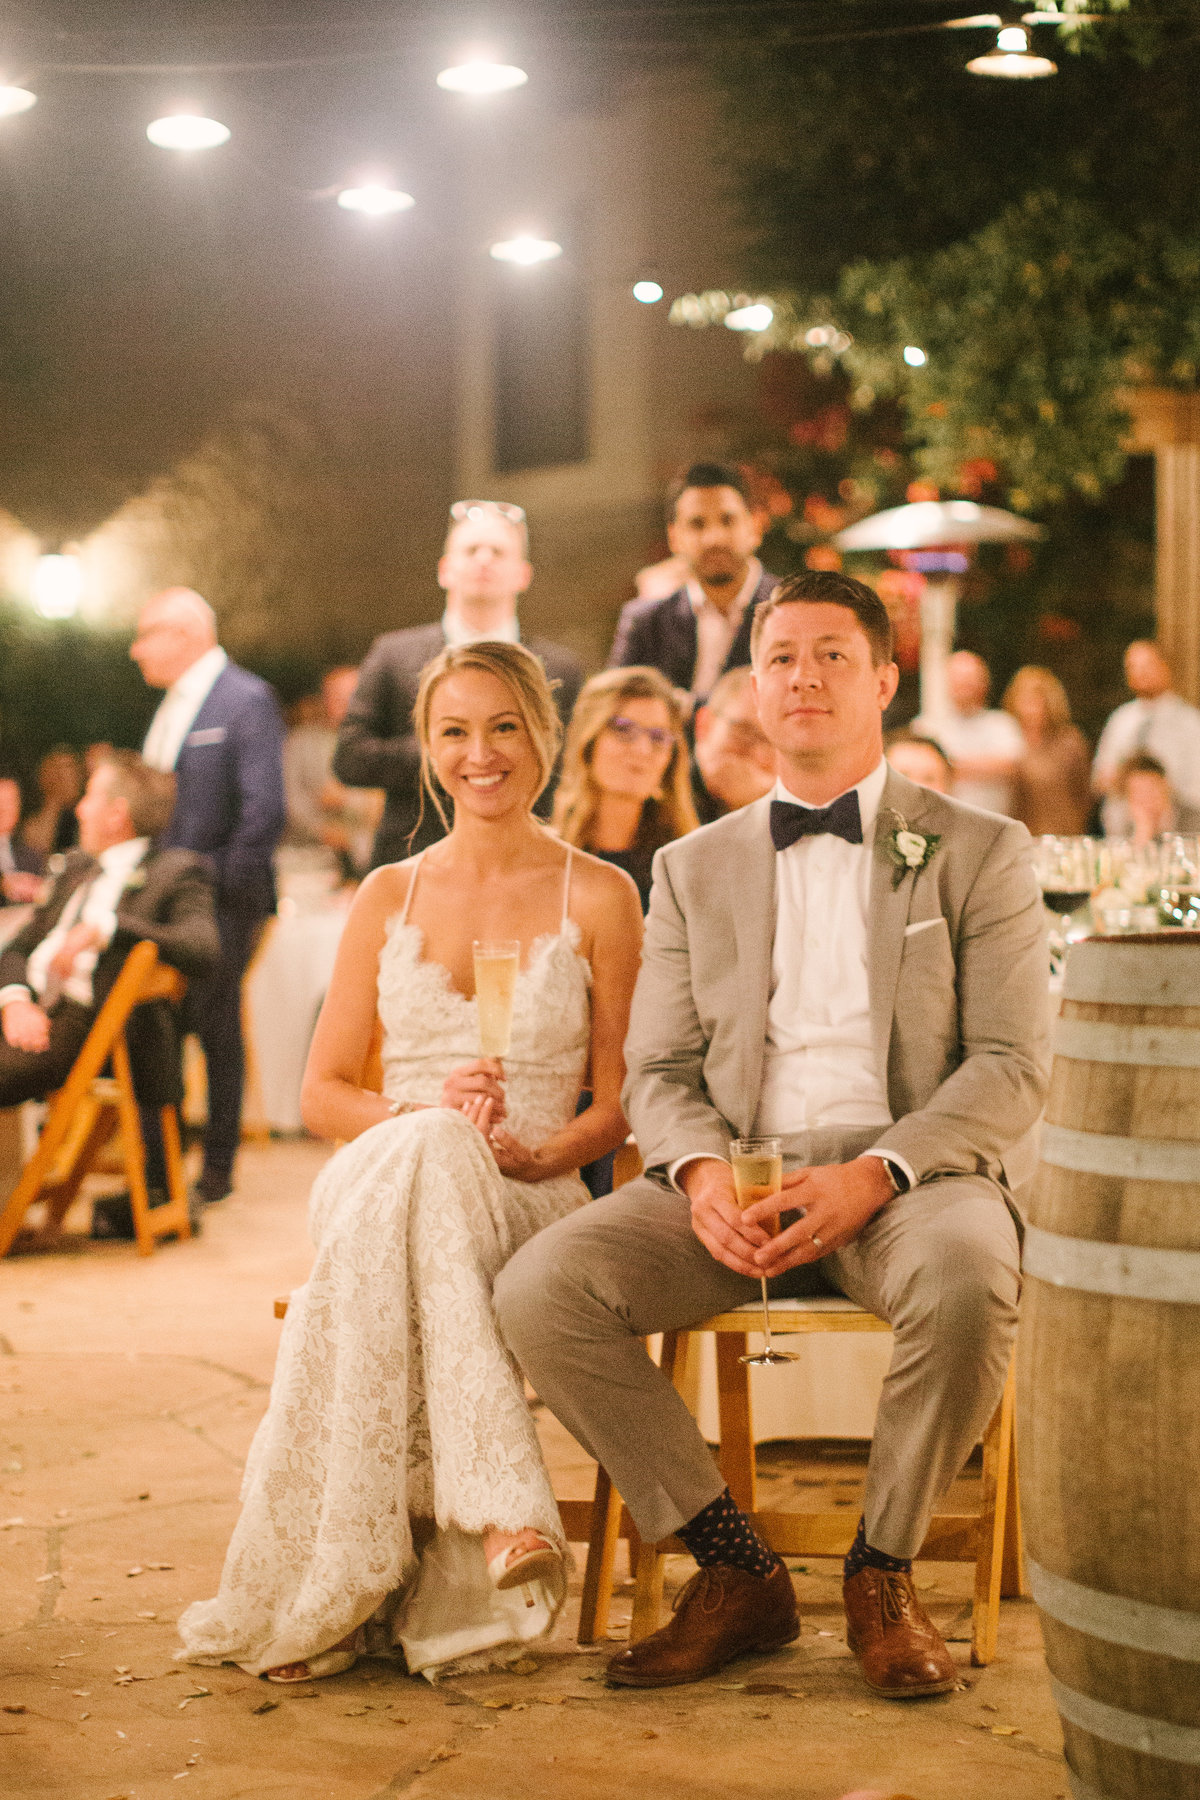 Best man gives toast at Firestone Vineyard wedding